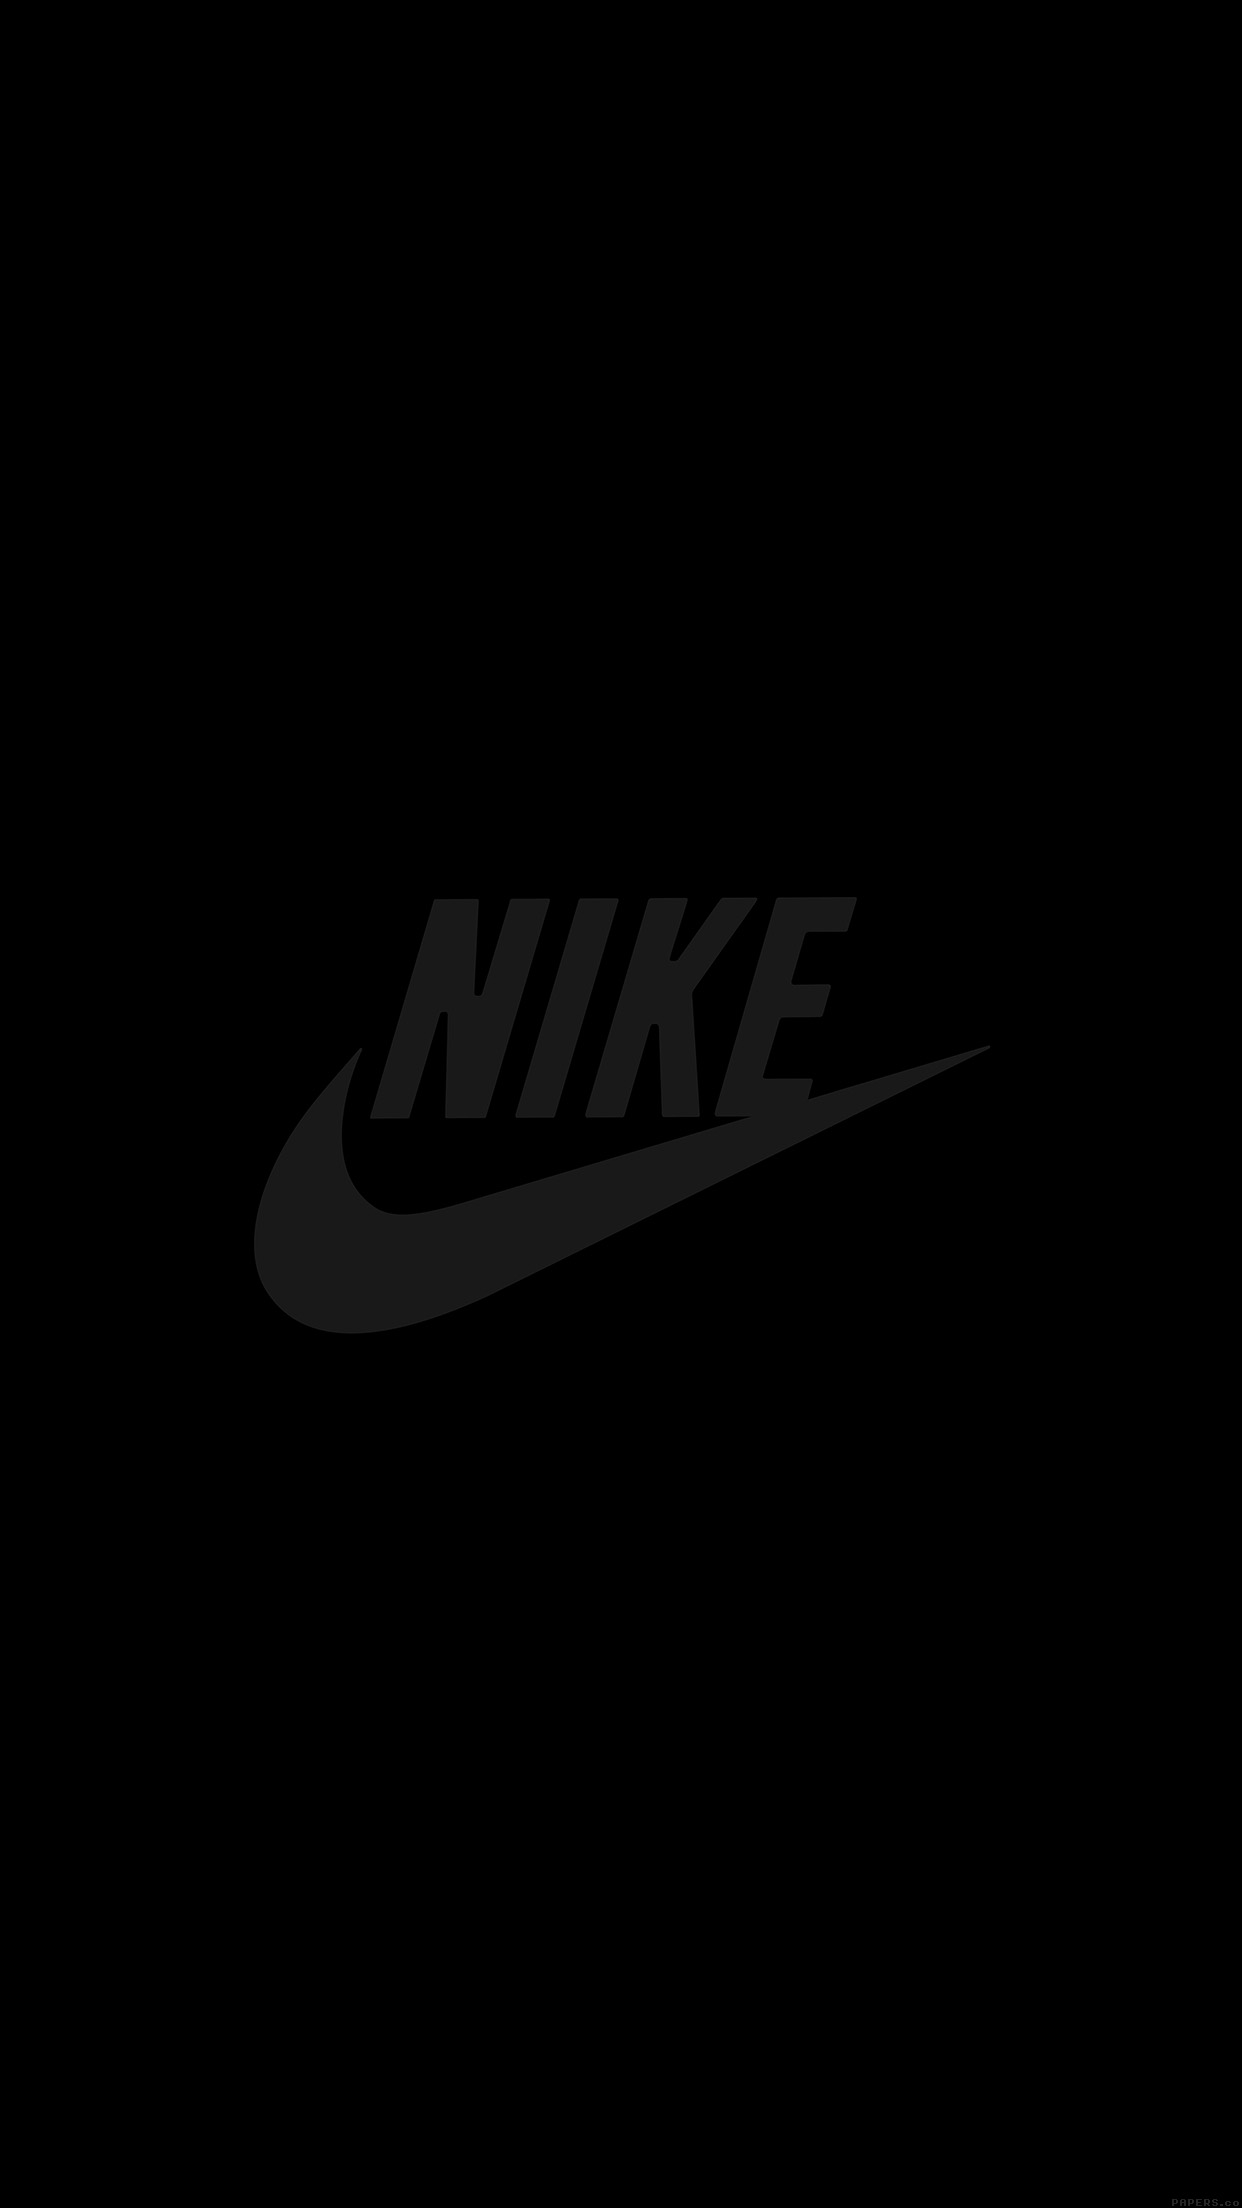 Best Wallpaper Mac Nike - papers  You Should Have_302281.jpg